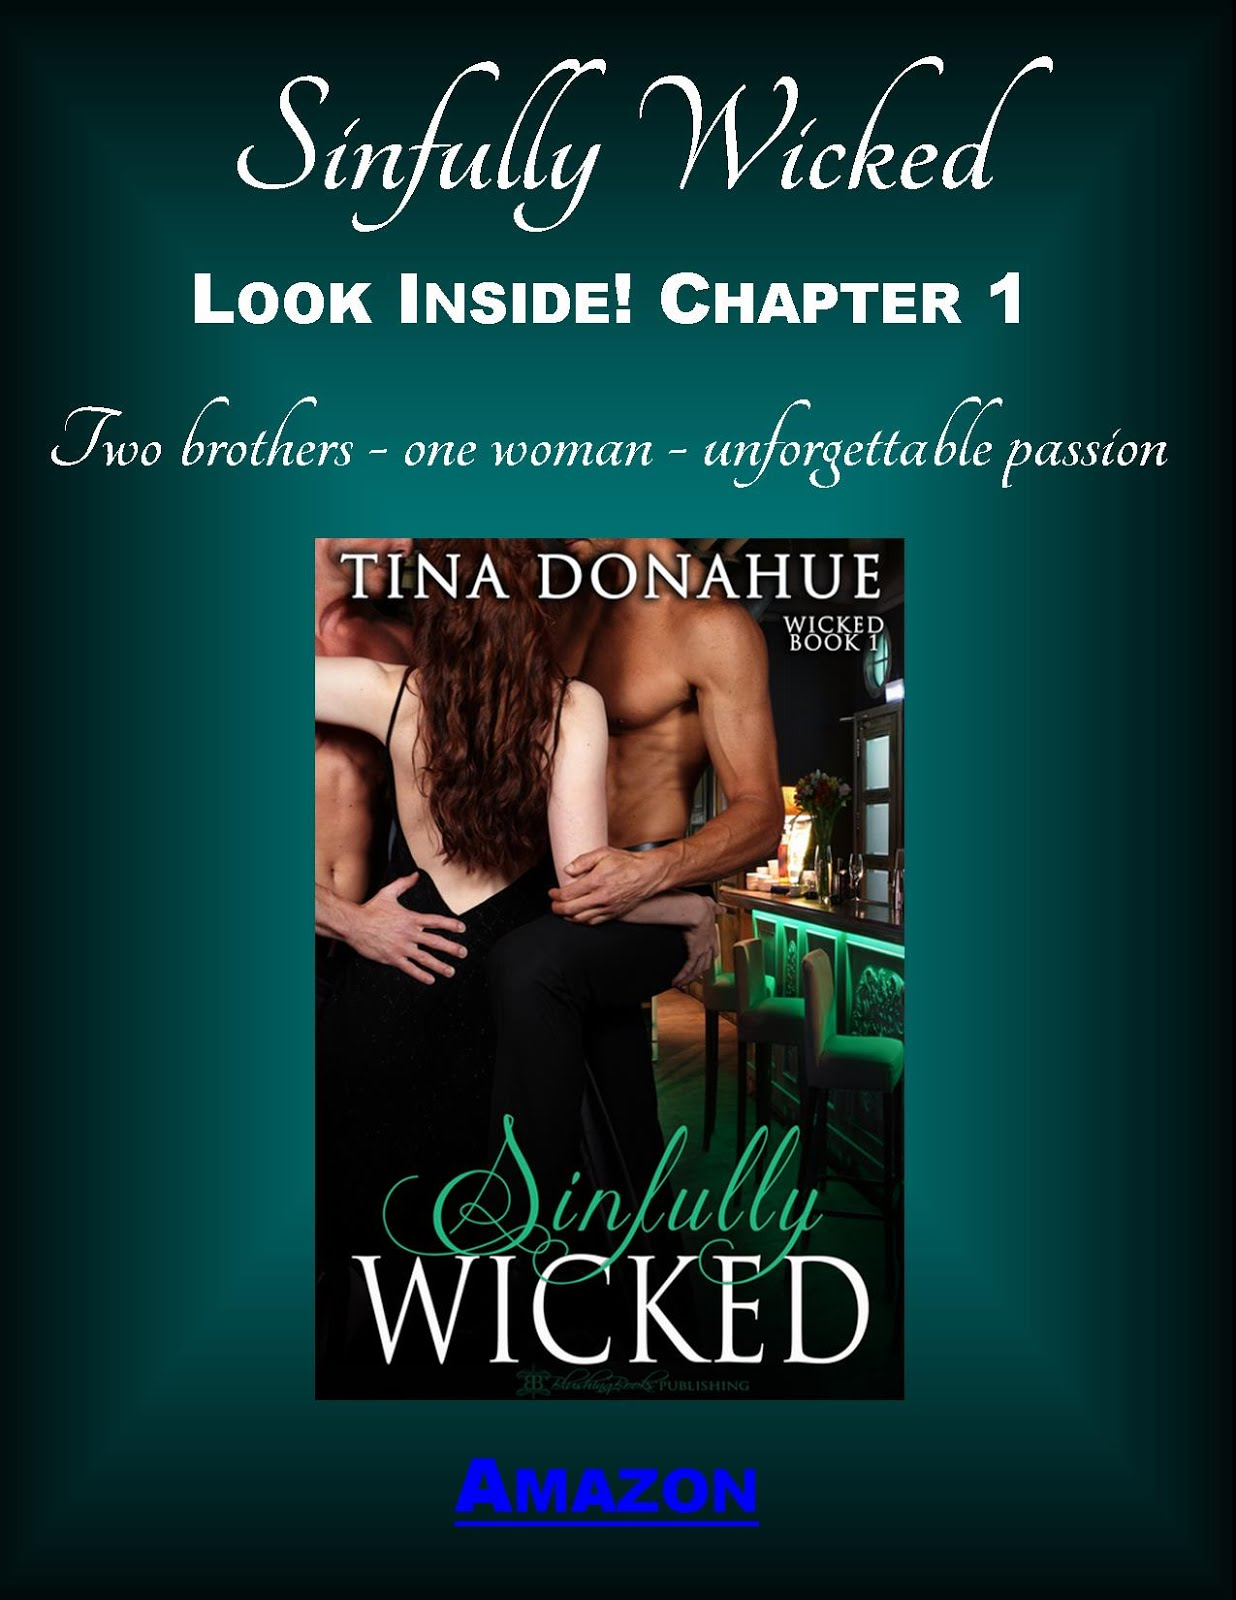 Sinfully Wicked